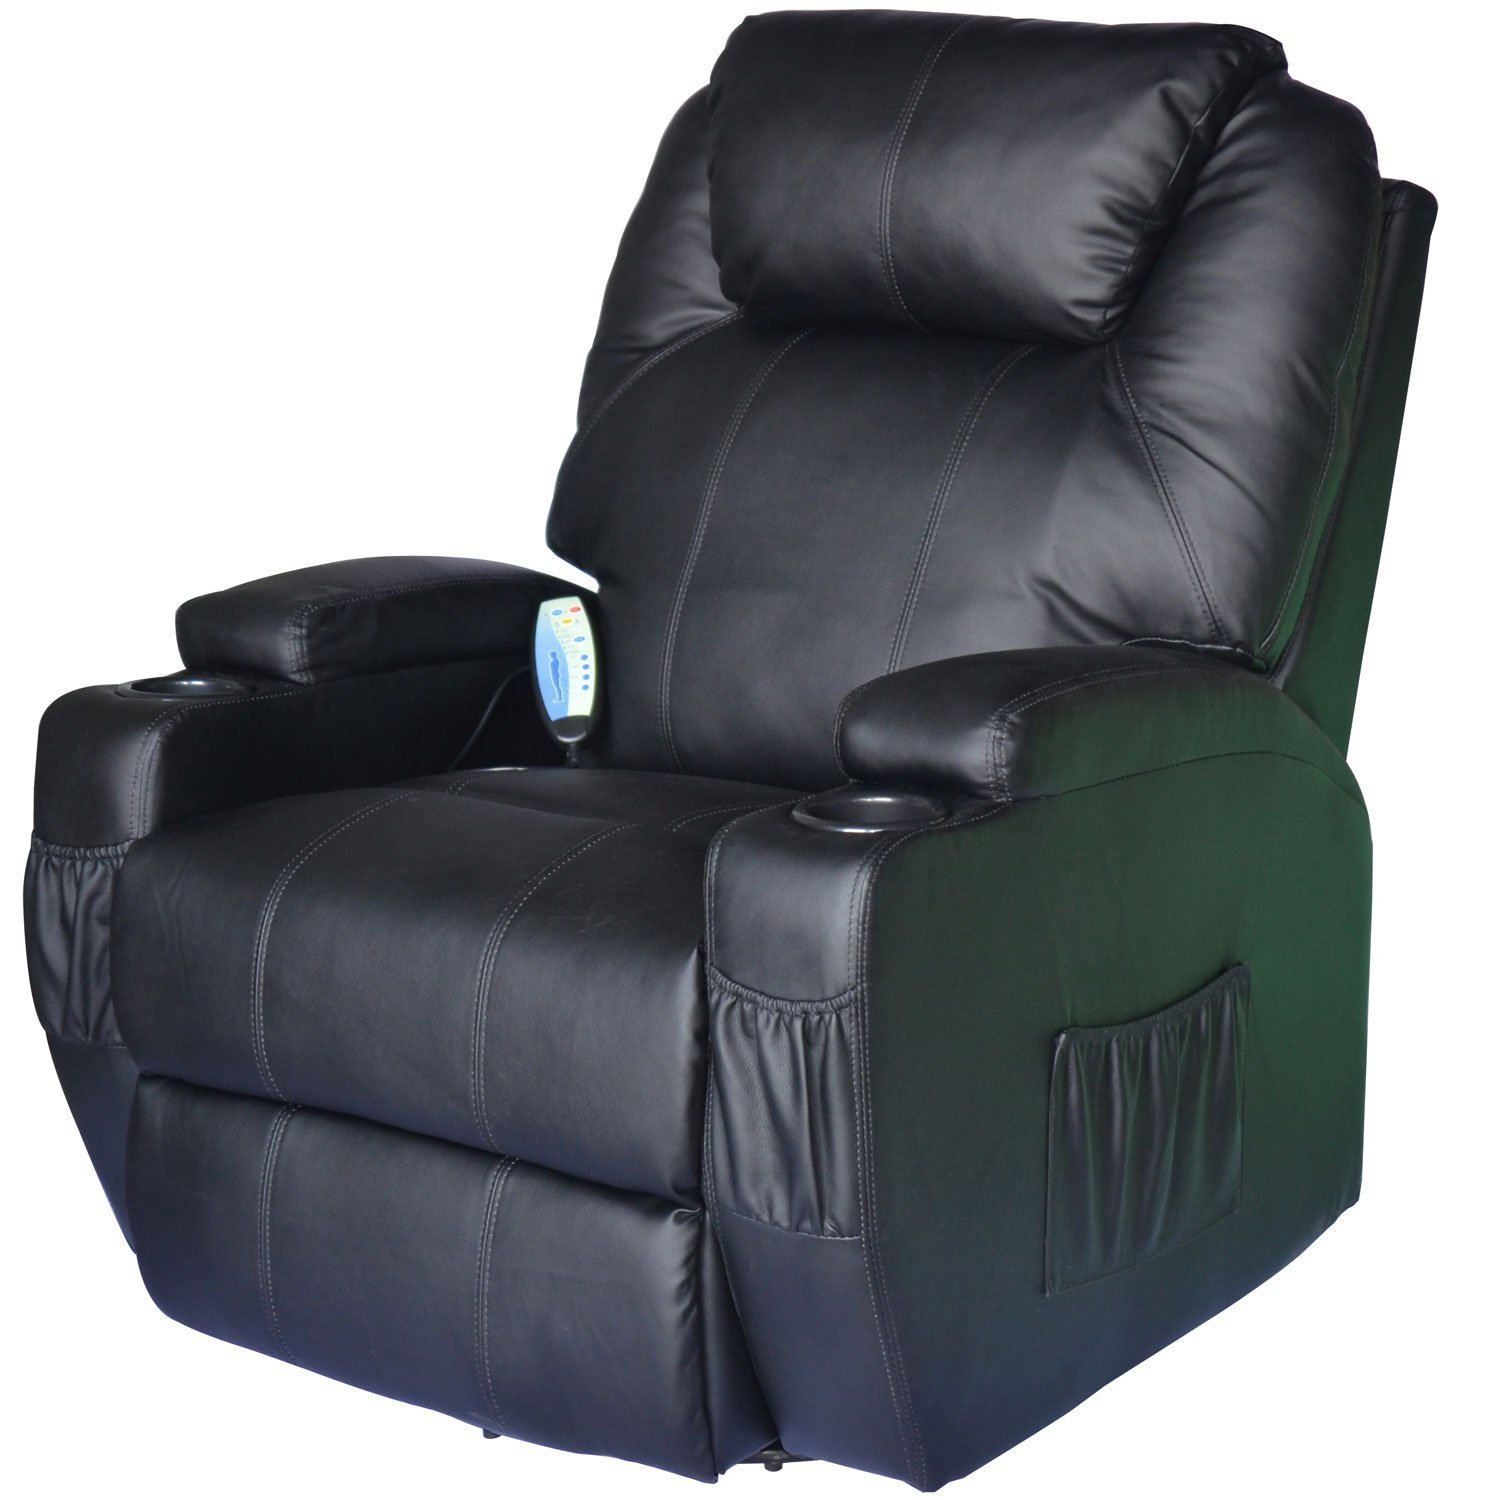 power recliners, best power recliners, power recliner, best power recliner